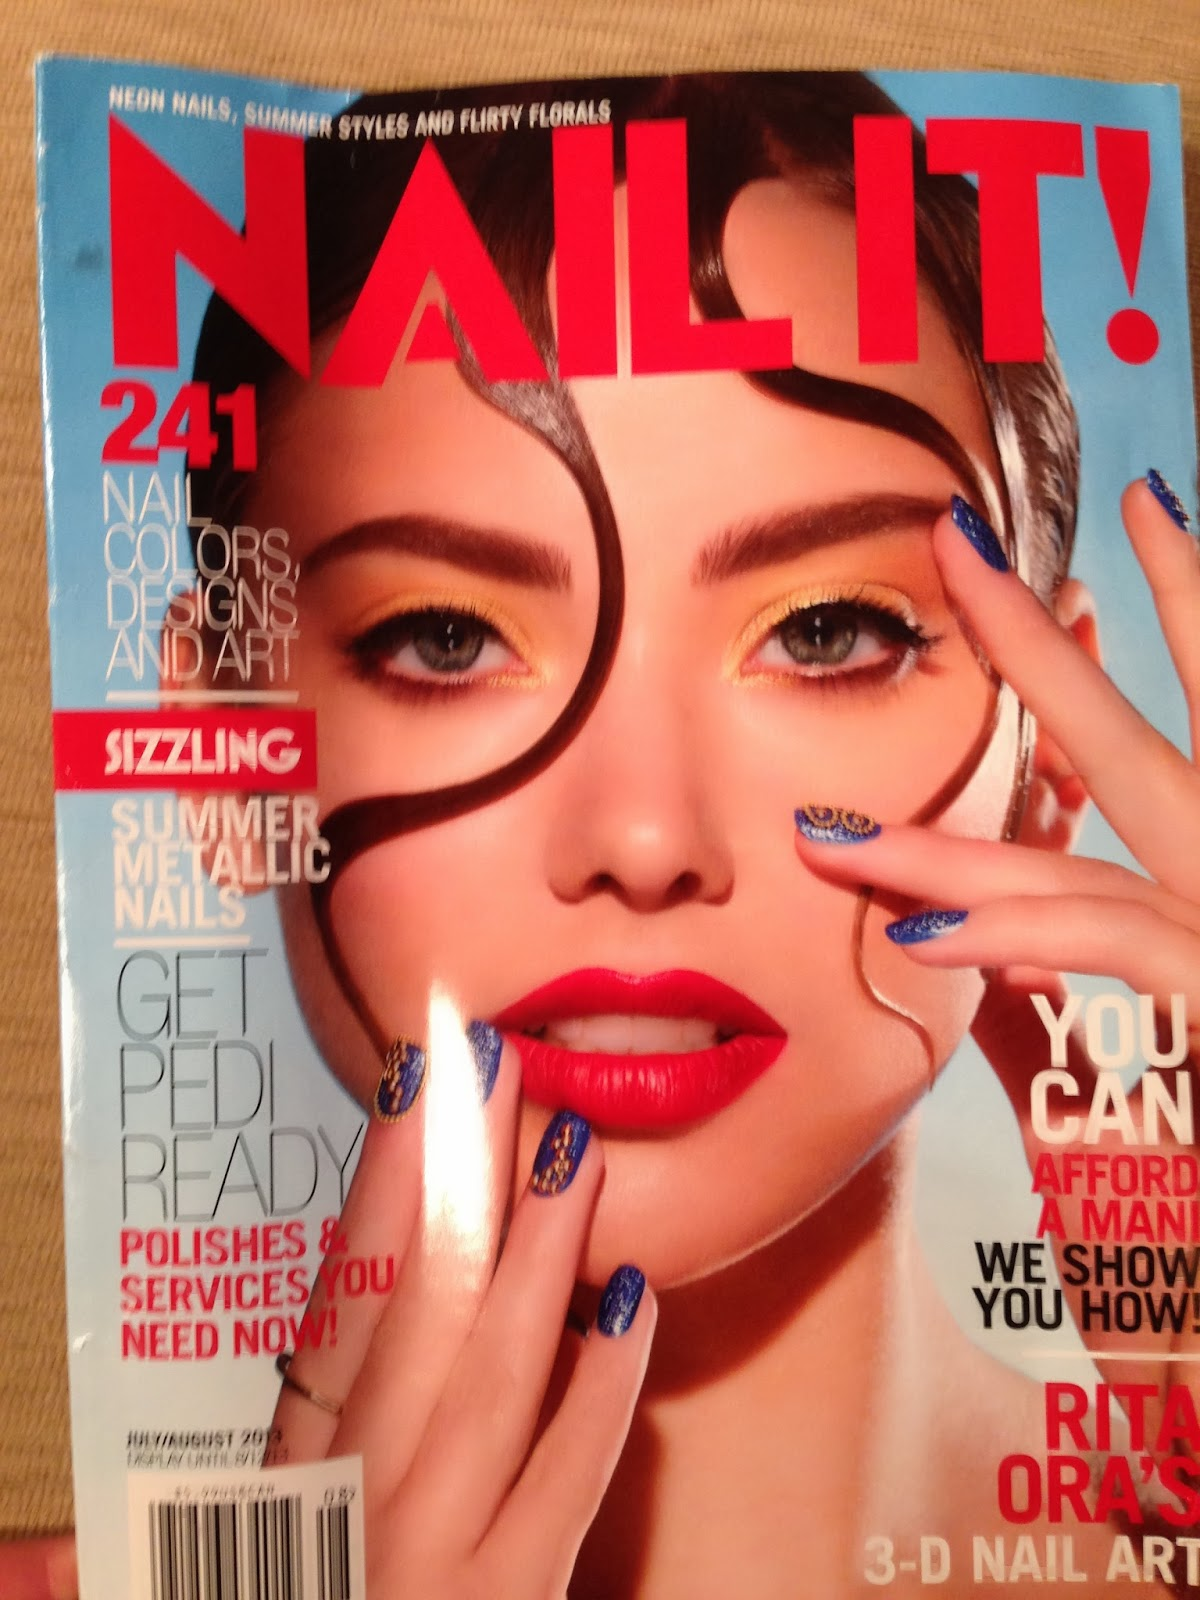 NailsByNumbers: Review: Nail It Magazine